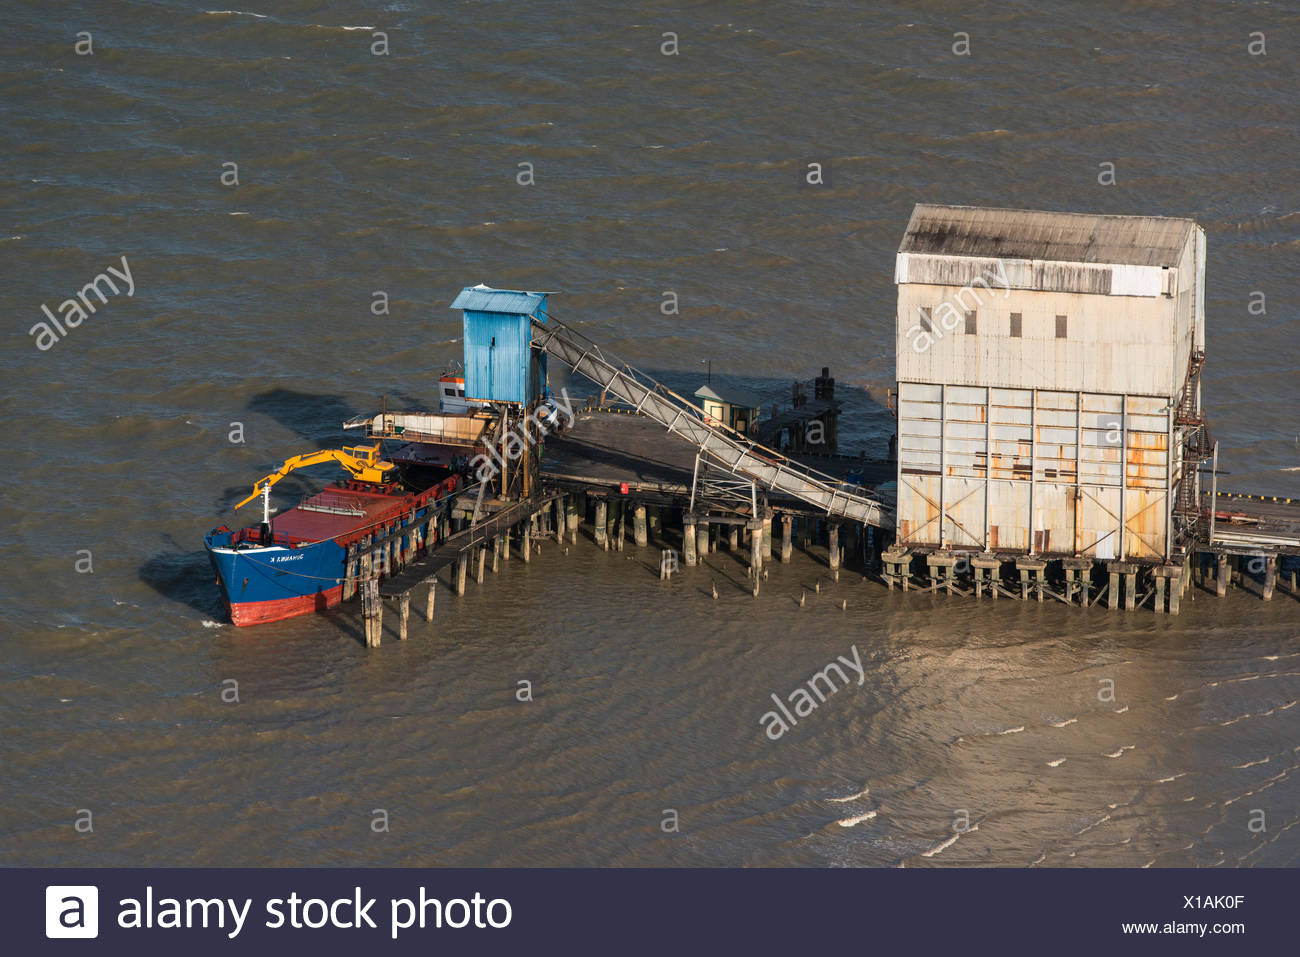 Aerial view of loading sugar on barge to export, coastal Guyana, South America - Stock Image